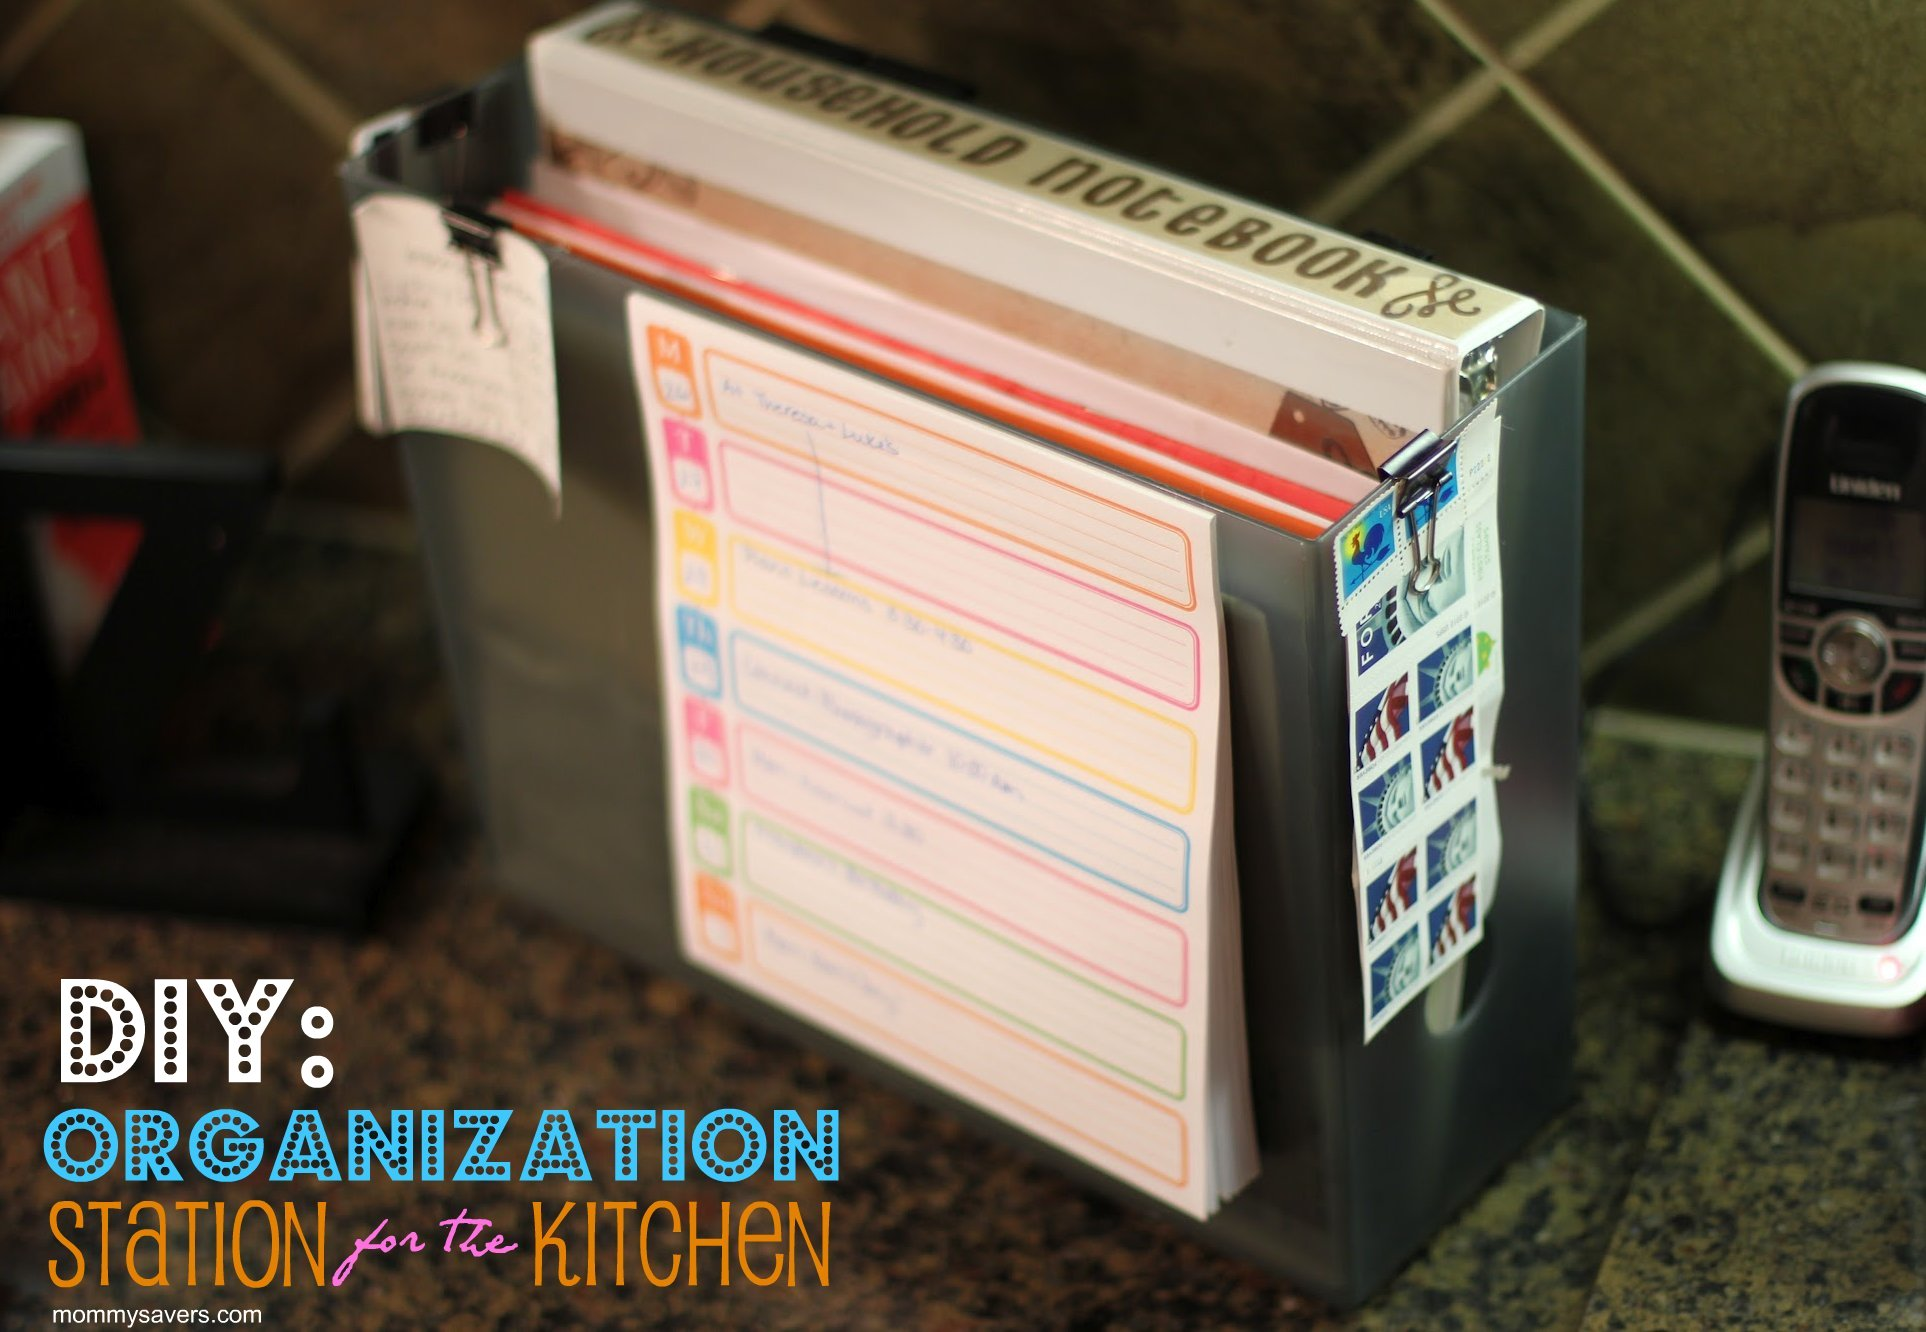 DIY: Create a Paper Organization Station for your Kitchen ... on diy beach ideas, diy bath ideas, diy wood countertops for kitchens, diy outdoors ideas, diy desk ideas, diy vanity ideas, diy garage ideas, diy stone ideas, diy shower ideas, diy cutting board ideas, diy painting ideas, diy roof ideas, diy fireplace ideas, diy toilet ideas, diy ottoman ideas, diy bar counter, diy office ideas, diy bookshelf ideas, diy tile ideas, diy park bench ideas,